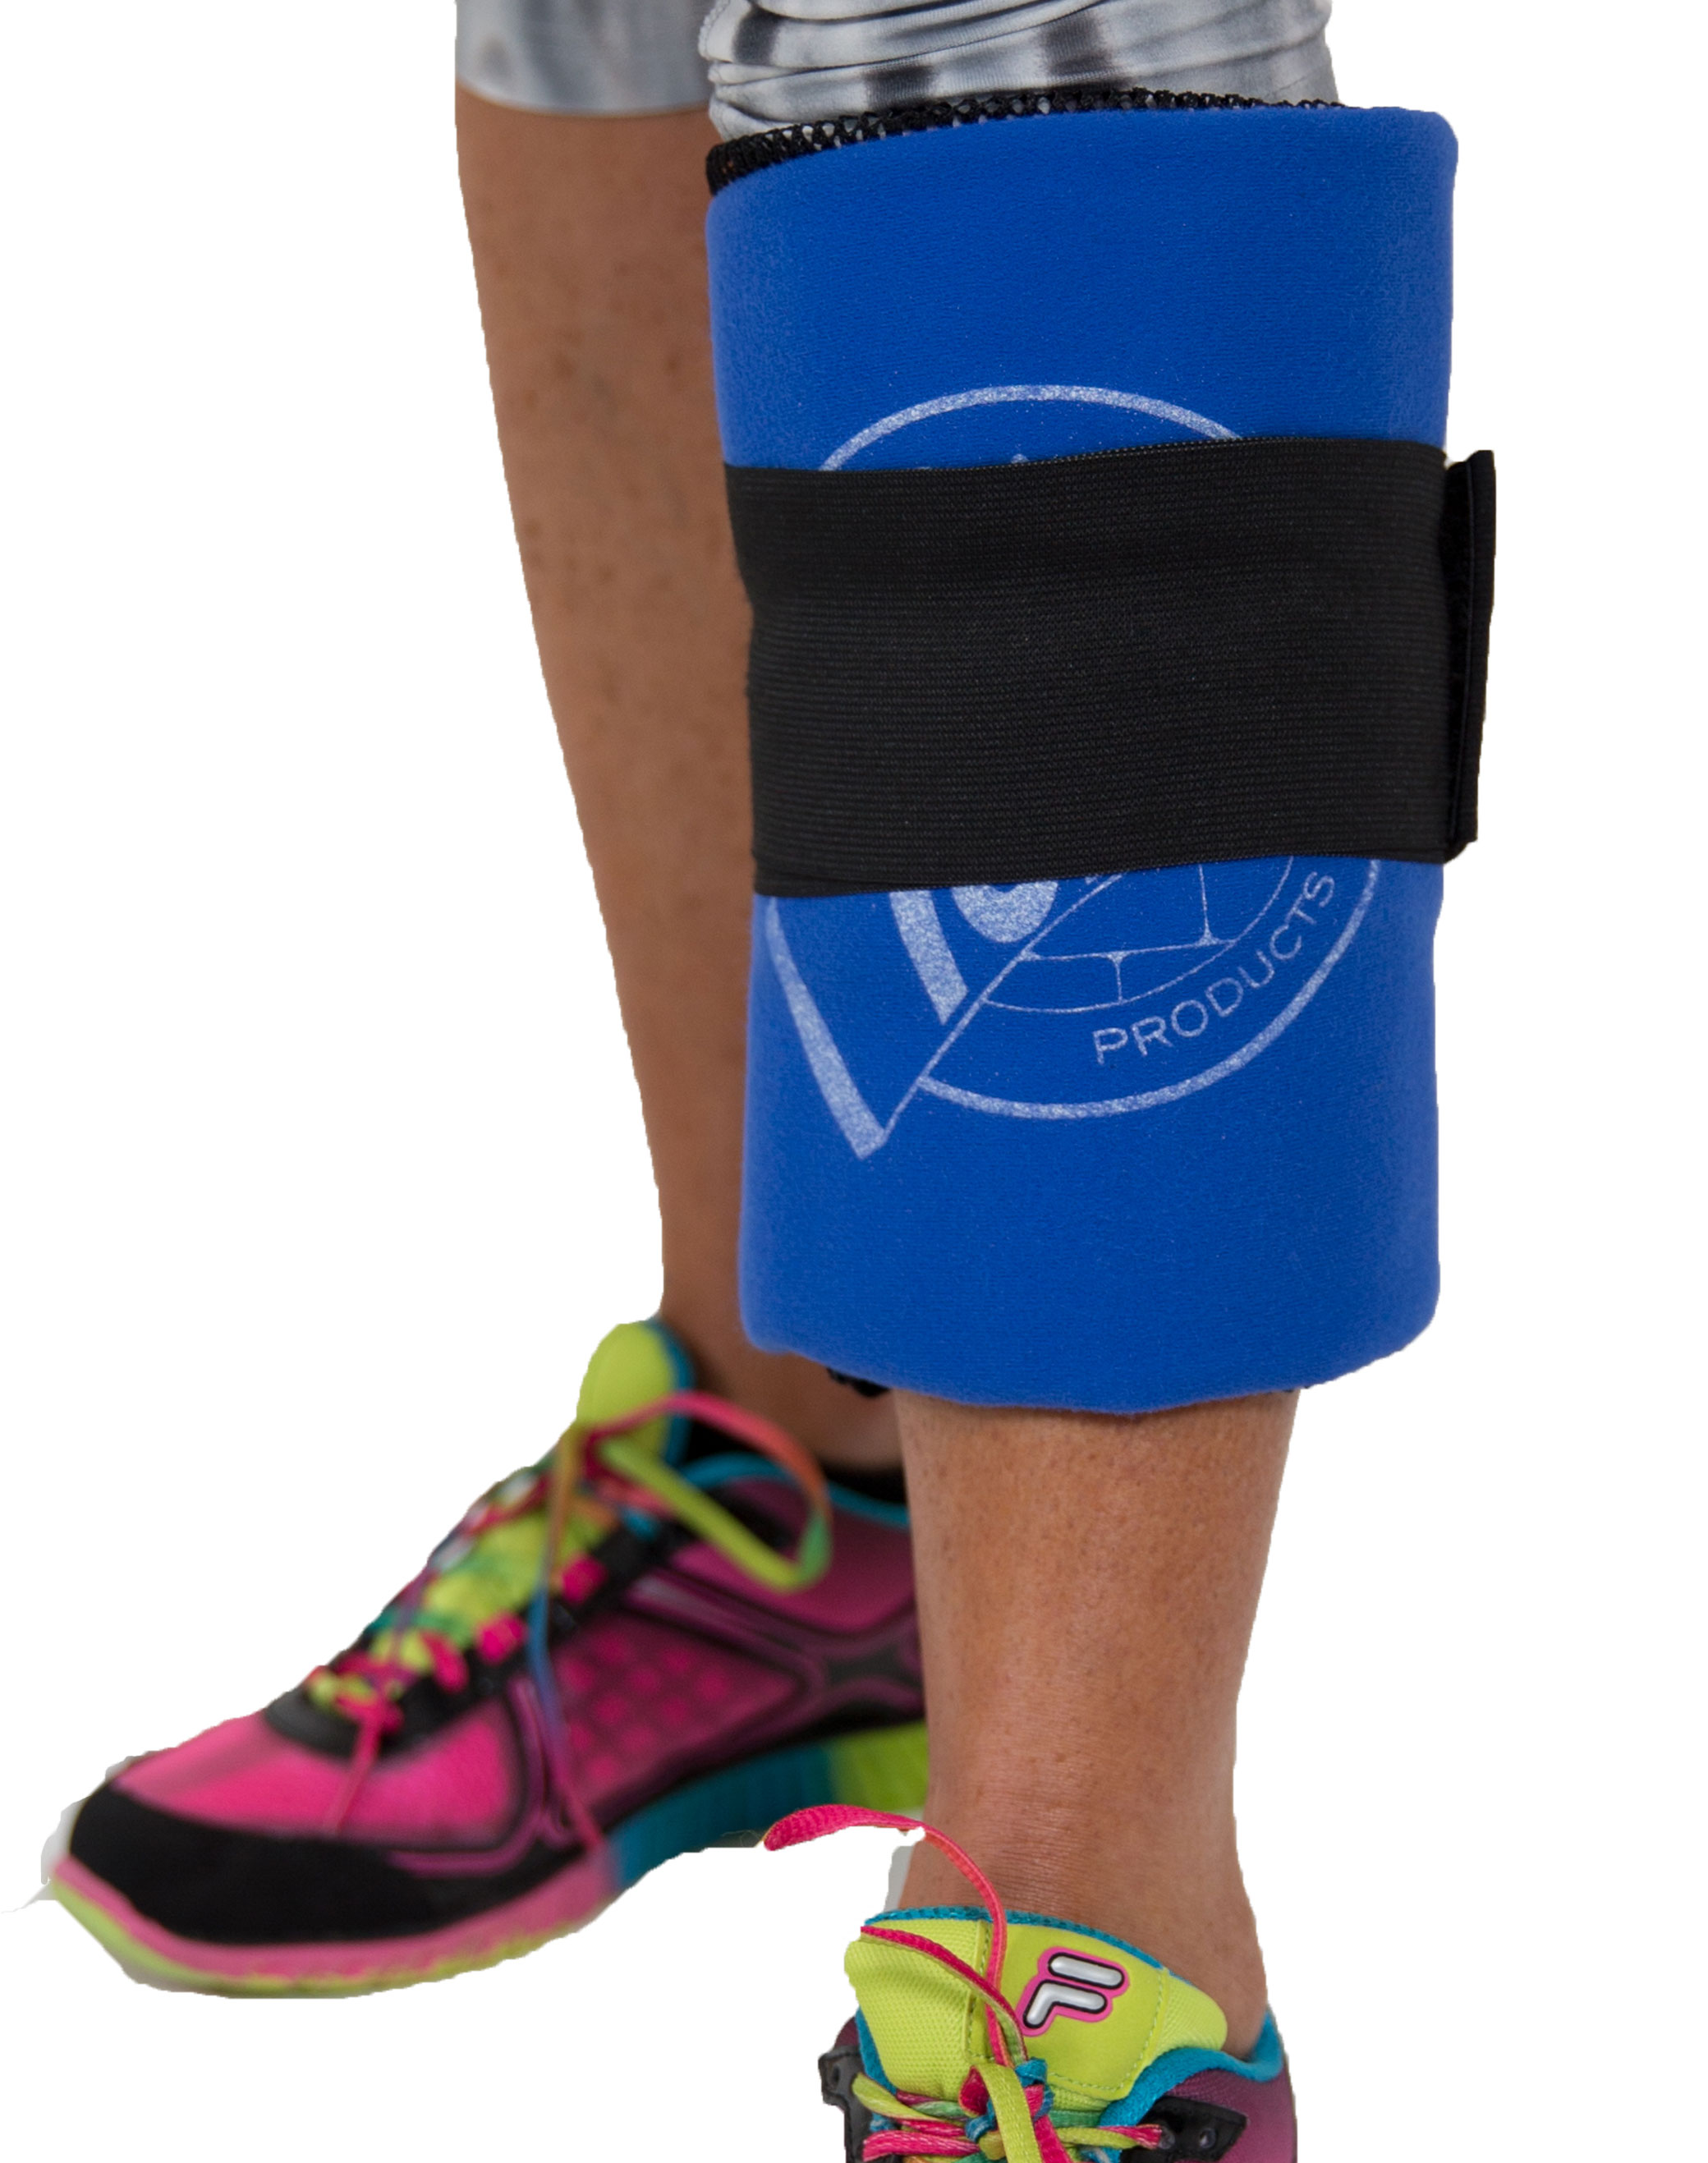 Universal Ice Wrap - Shin Application of the Pro Ice pi260